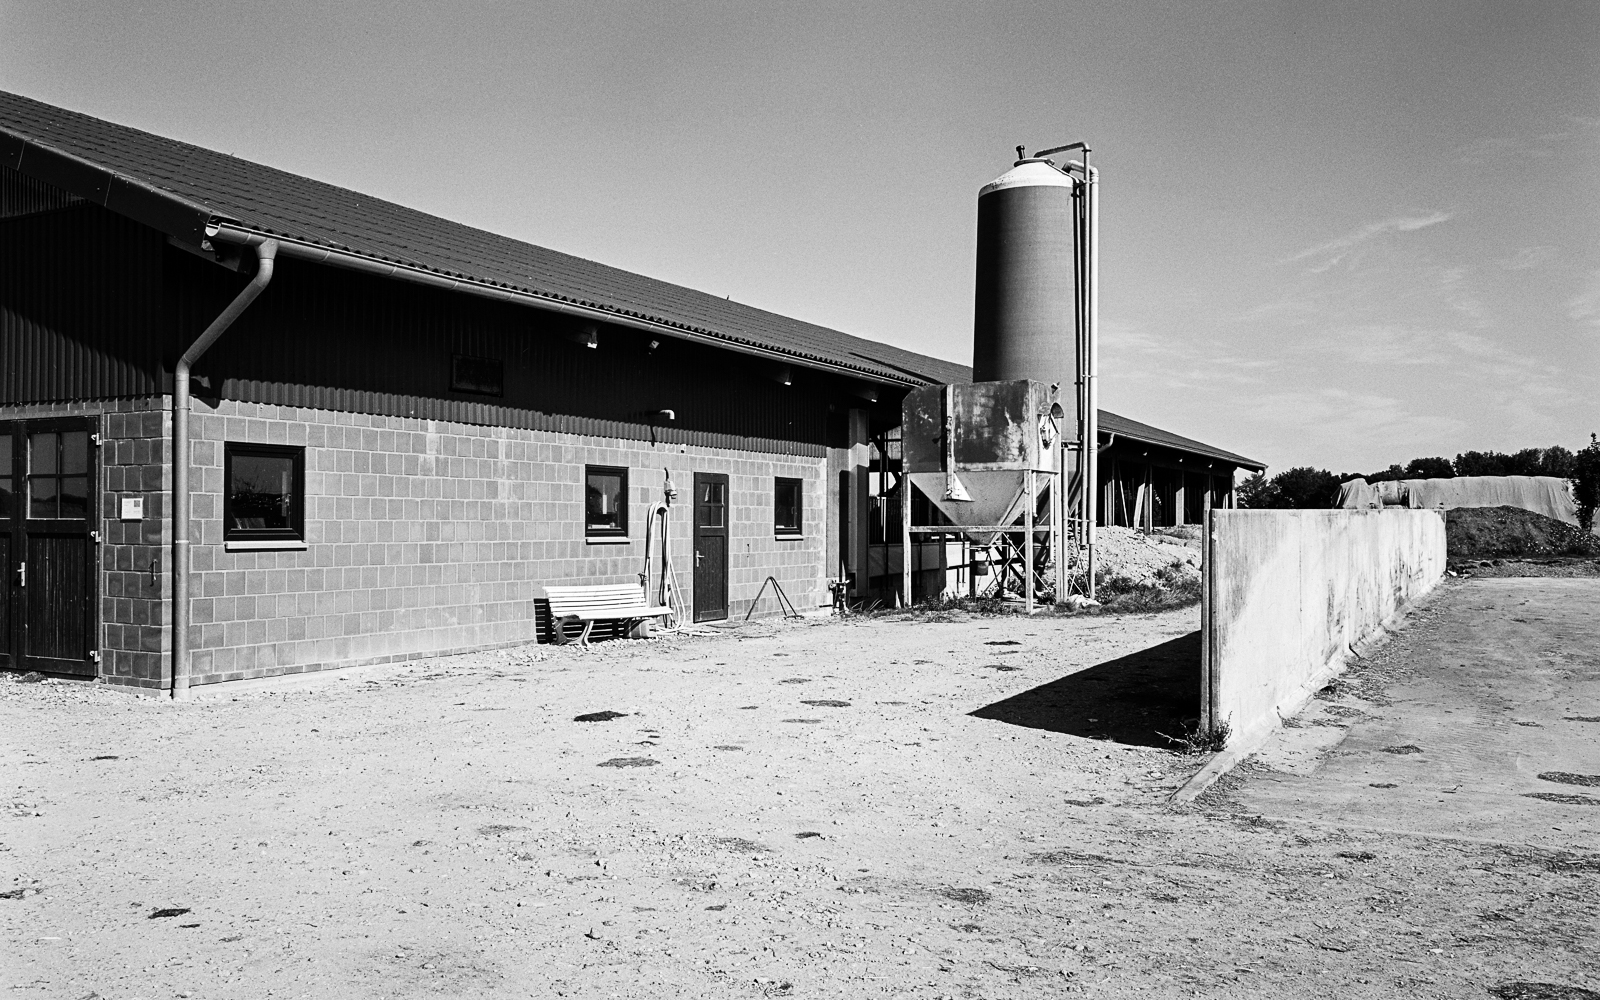 A modern cow barn with a silo tower on its side.